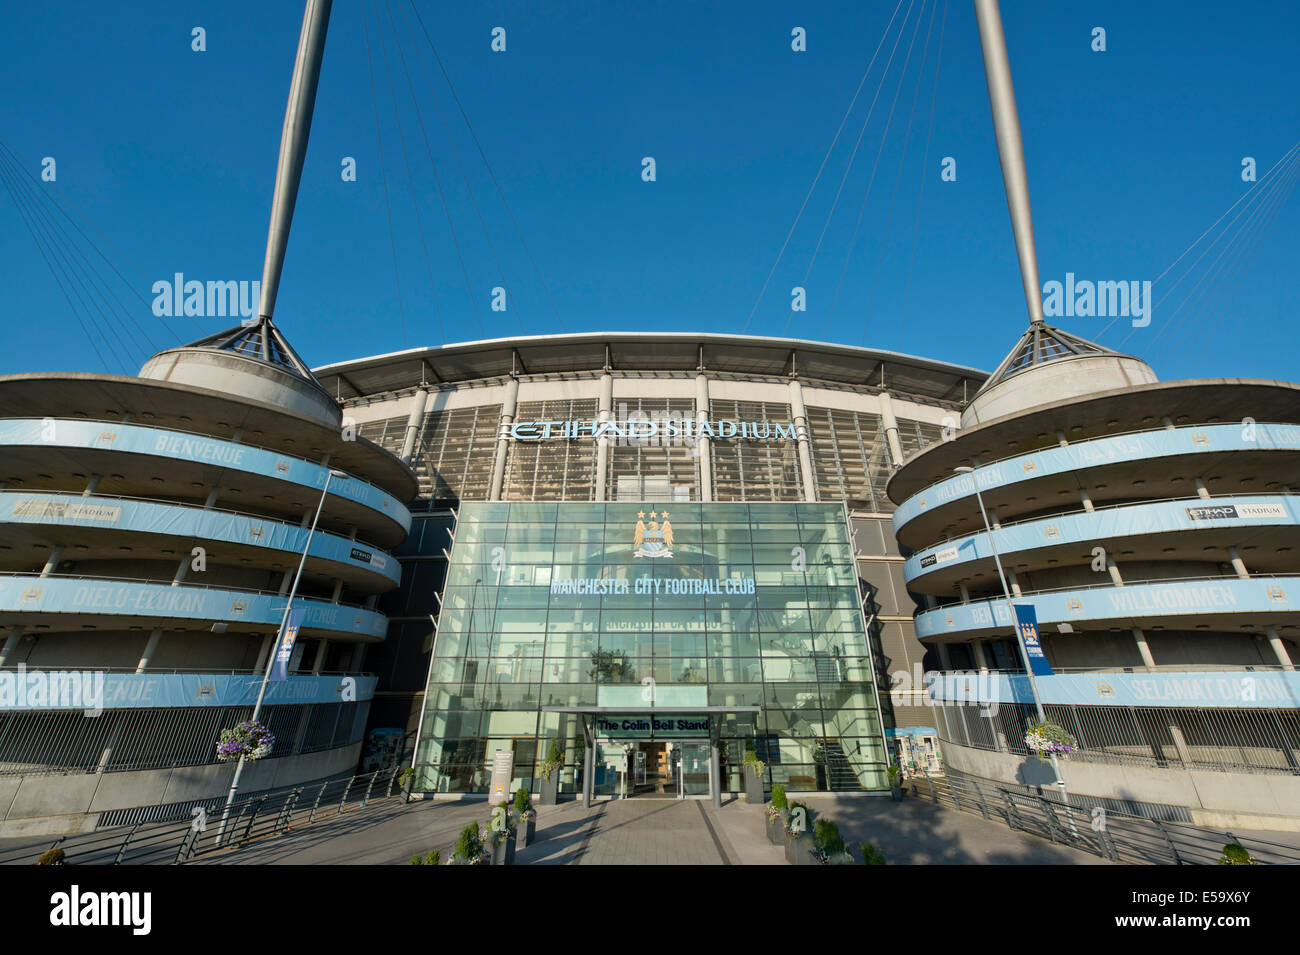 An external view of the Etihad Stadium, home of Barclays Premier League club Manchester City Football Club (Editorial - Stock Image